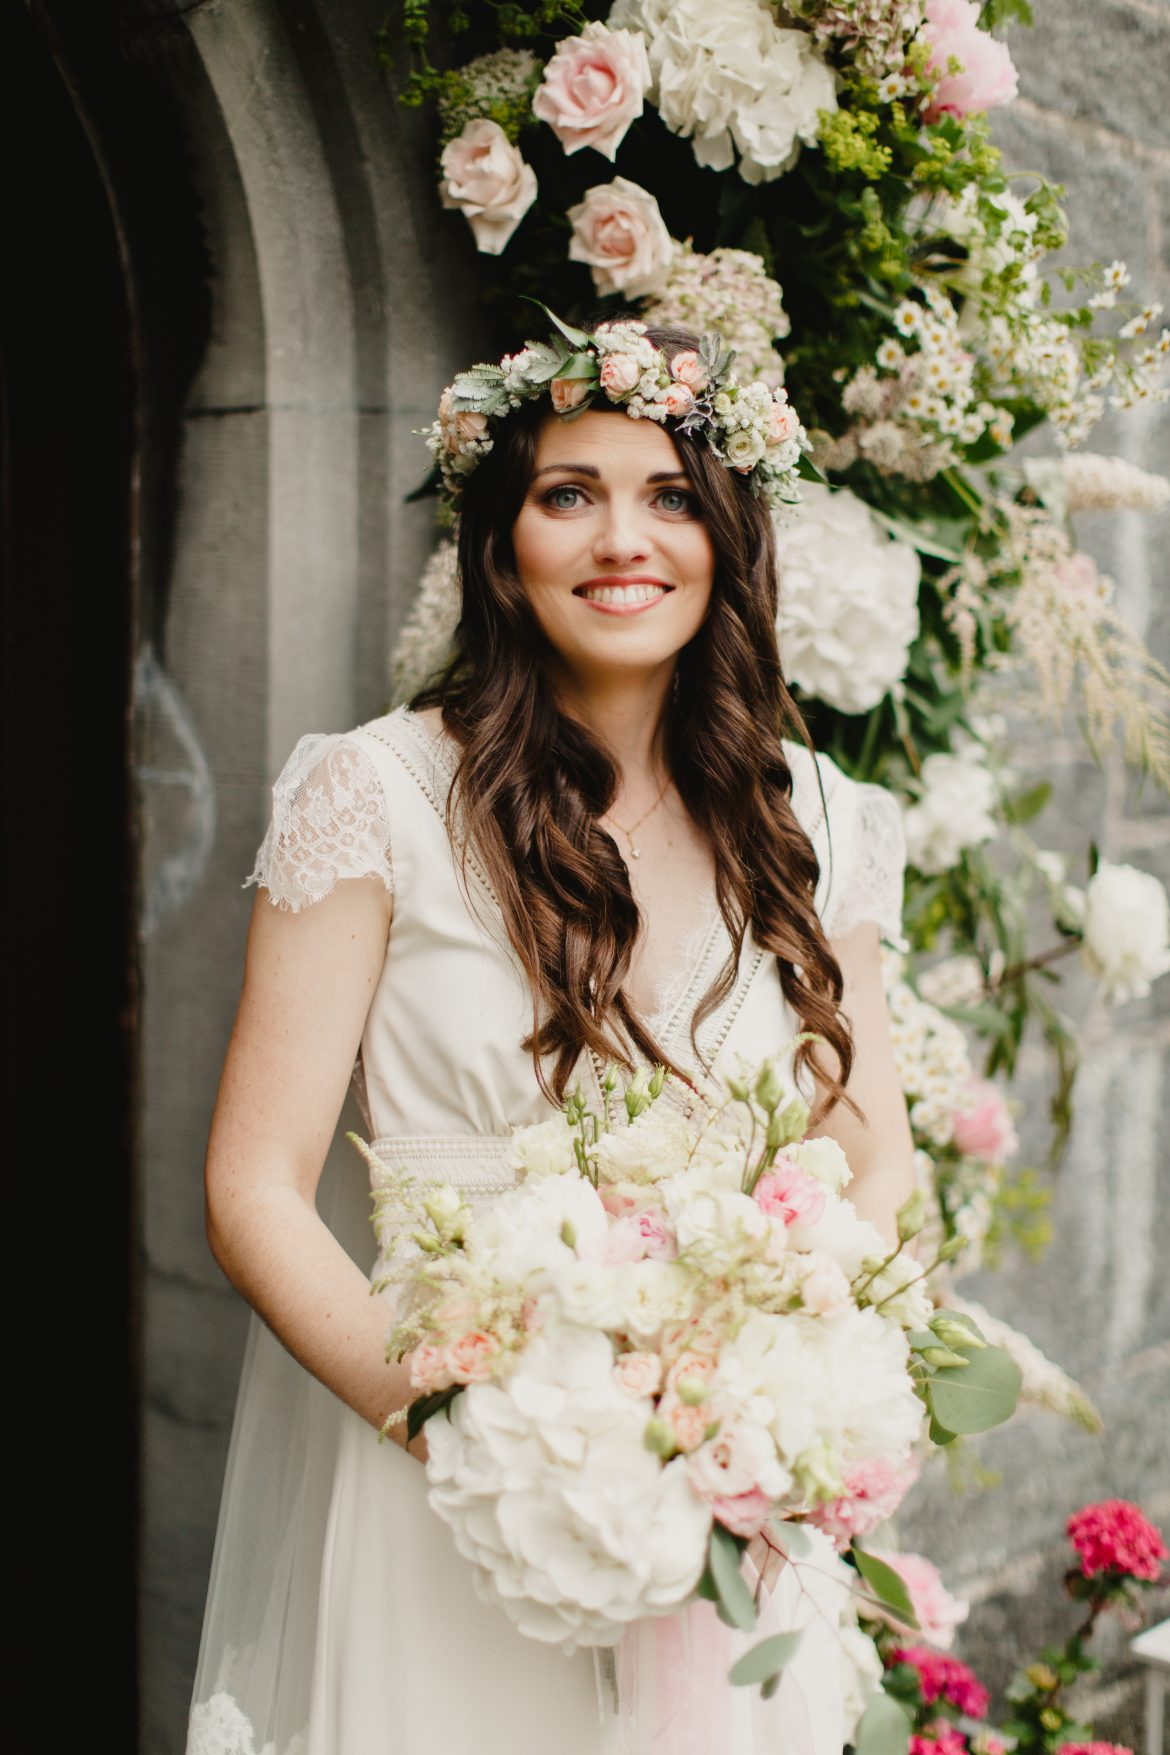 A beautiful bride wearing a flower crown with her hair left down in soft curls